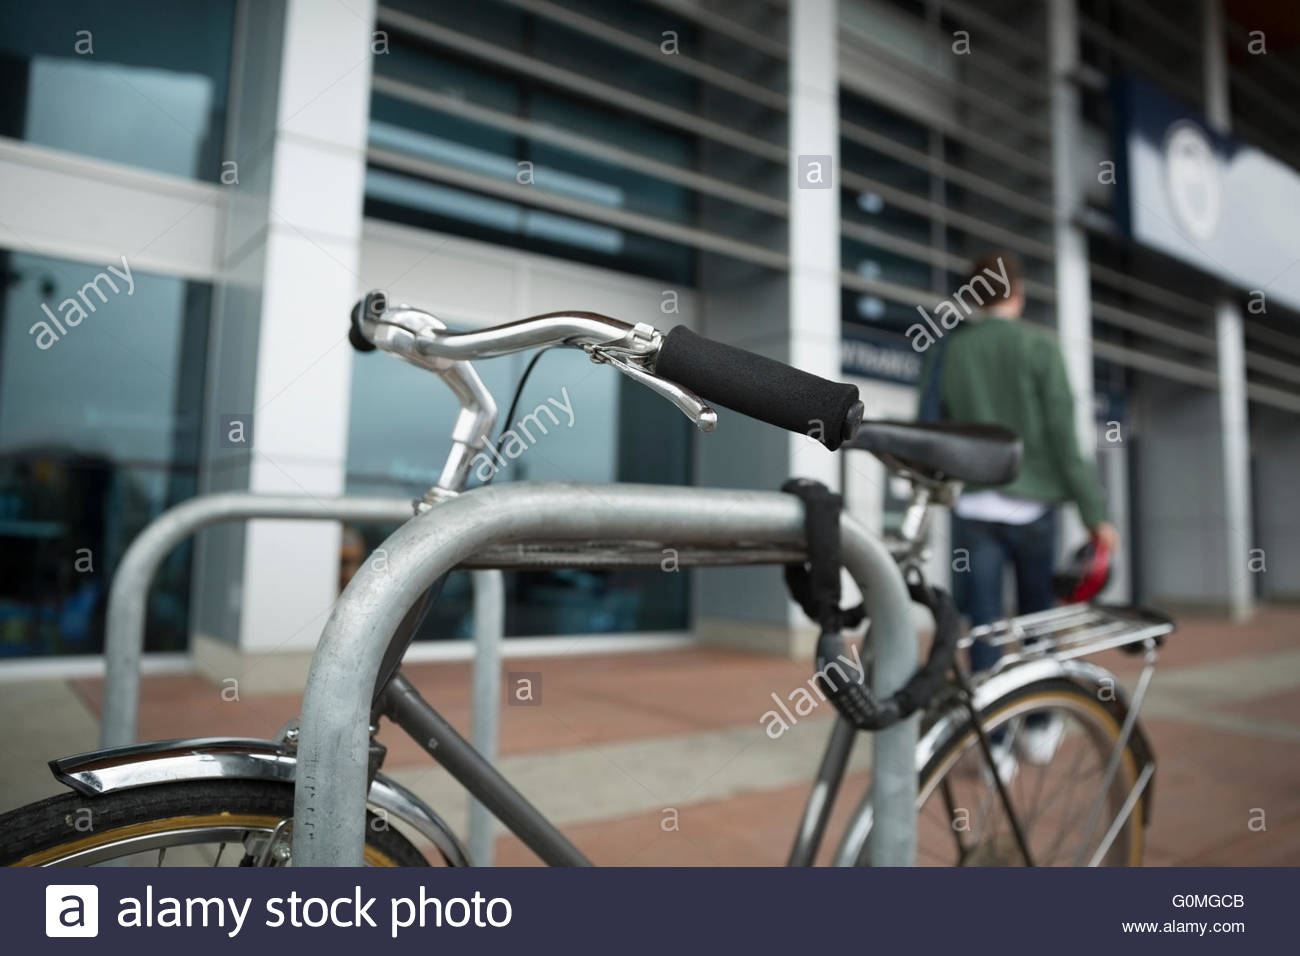 Bicycle secured to post - Stock Image